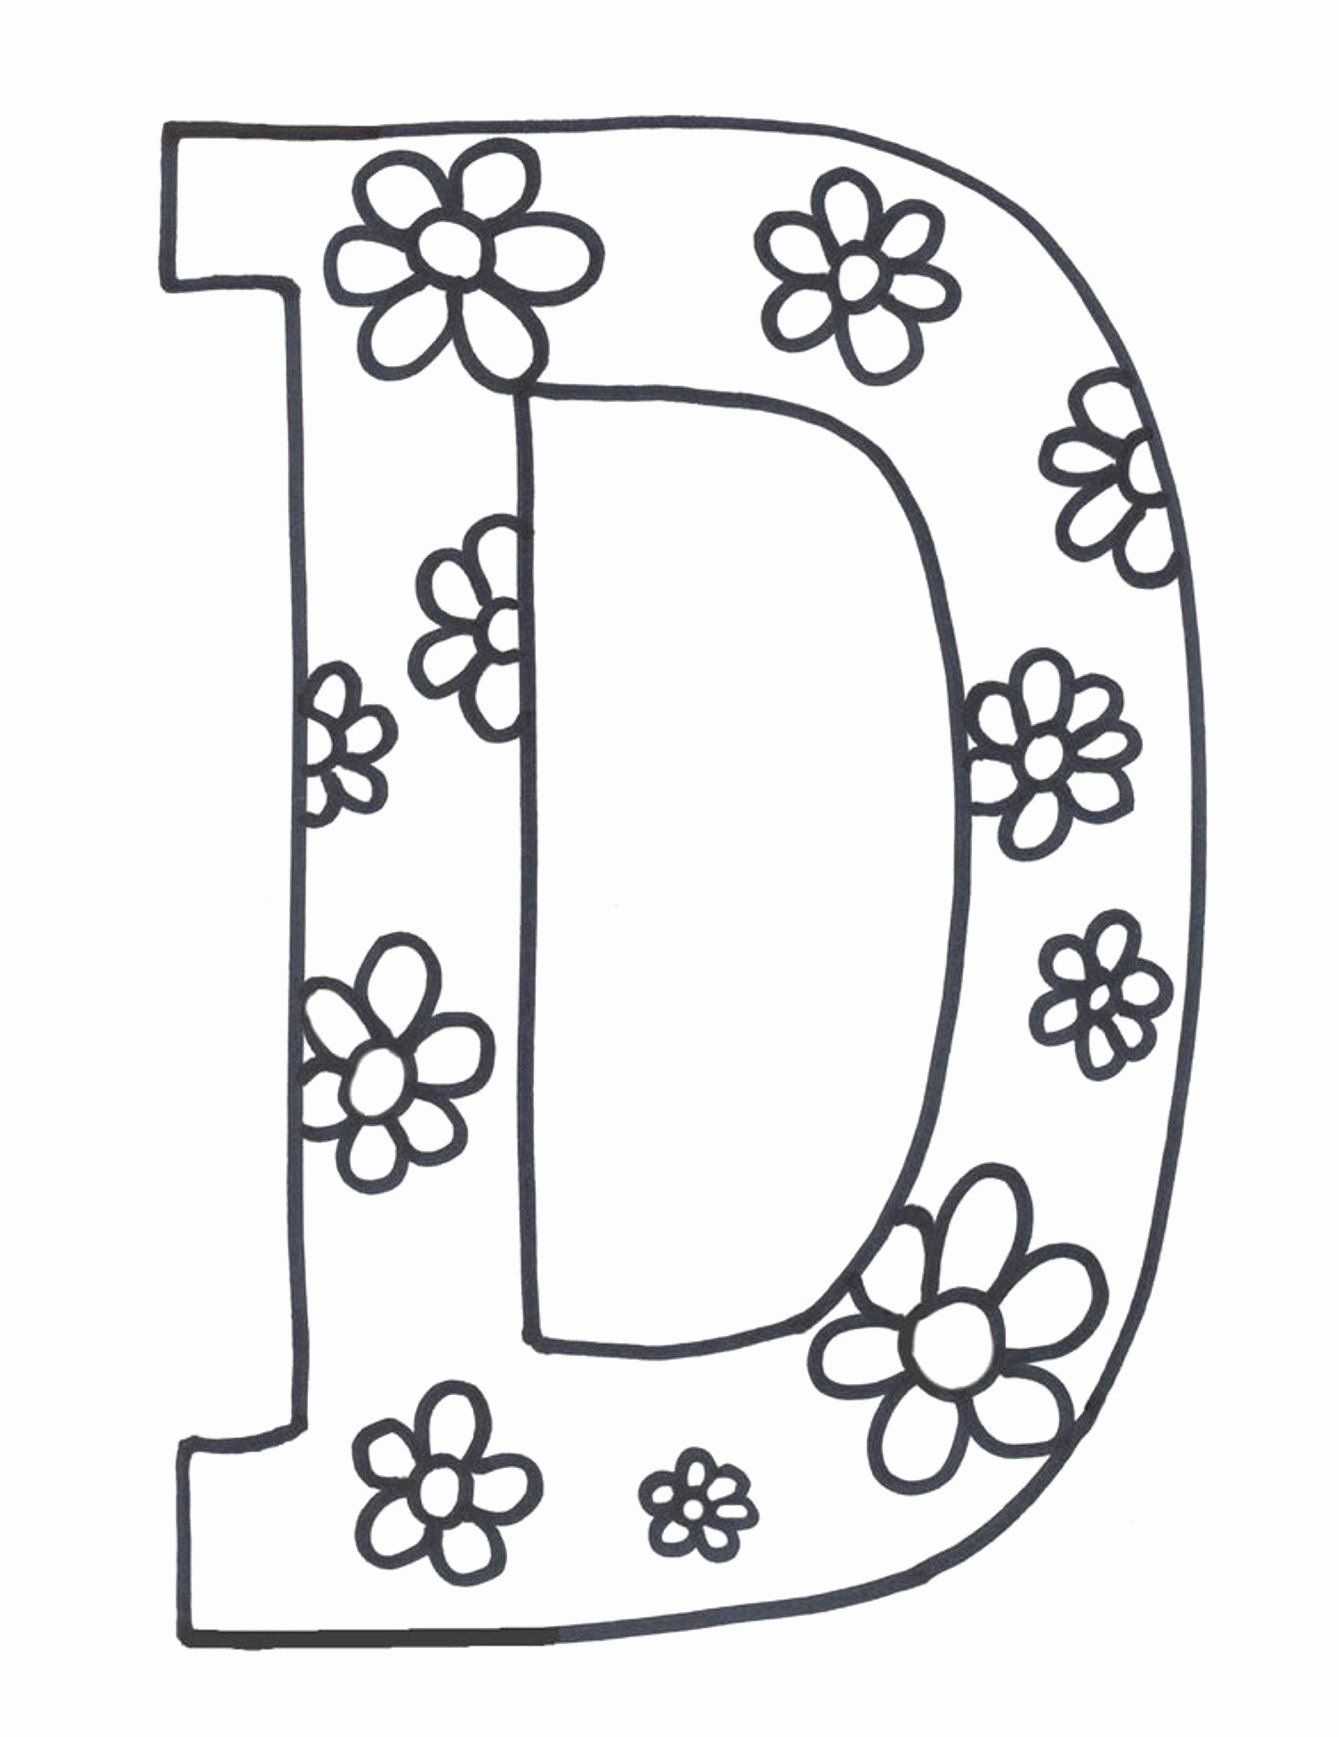 Alphabet Letters Coloring Pages Inspirational Coloring Pages Free Printable Letter Col Letter A Coloring Pages Abc Coloring Pages Free Printable Coloring Pages [ 1737 x 1339 Pixel ]